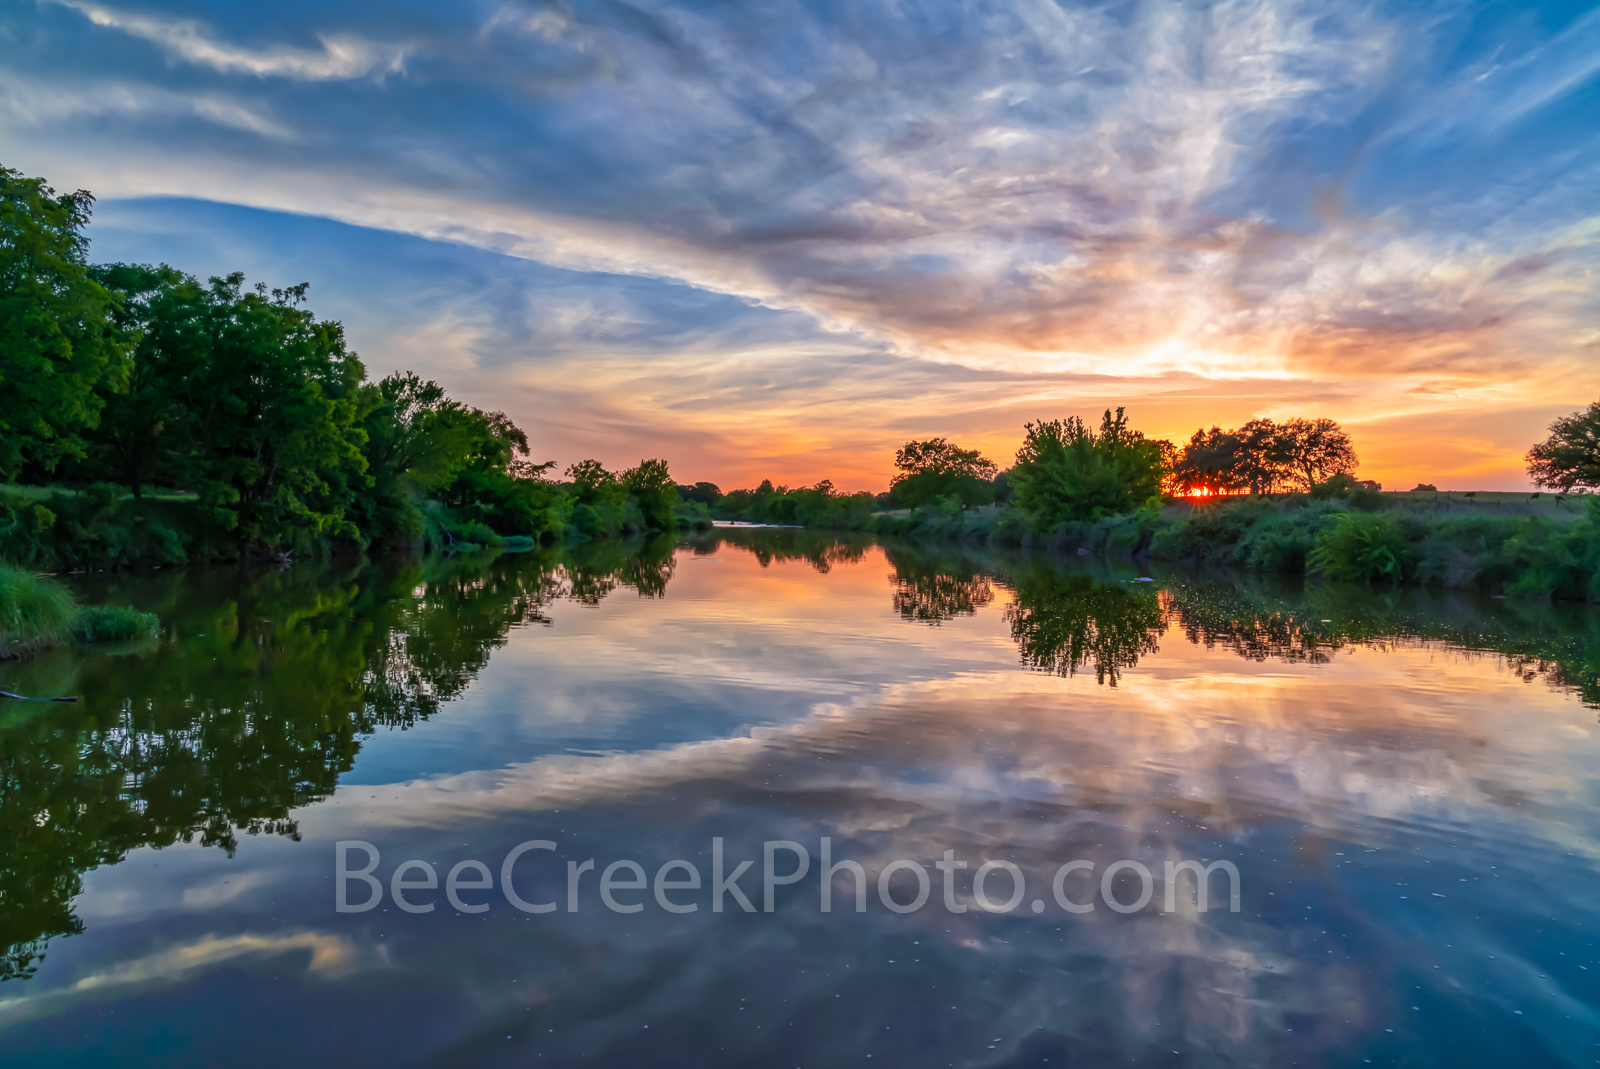 Texas Hill Country Sunset, Texas Hill country, sunset, Pedernales river, landscape, water, river, trees, rurals, Colorado river, centrral texas, hill country, Texas. rural,LBJ Ranch, J, photo